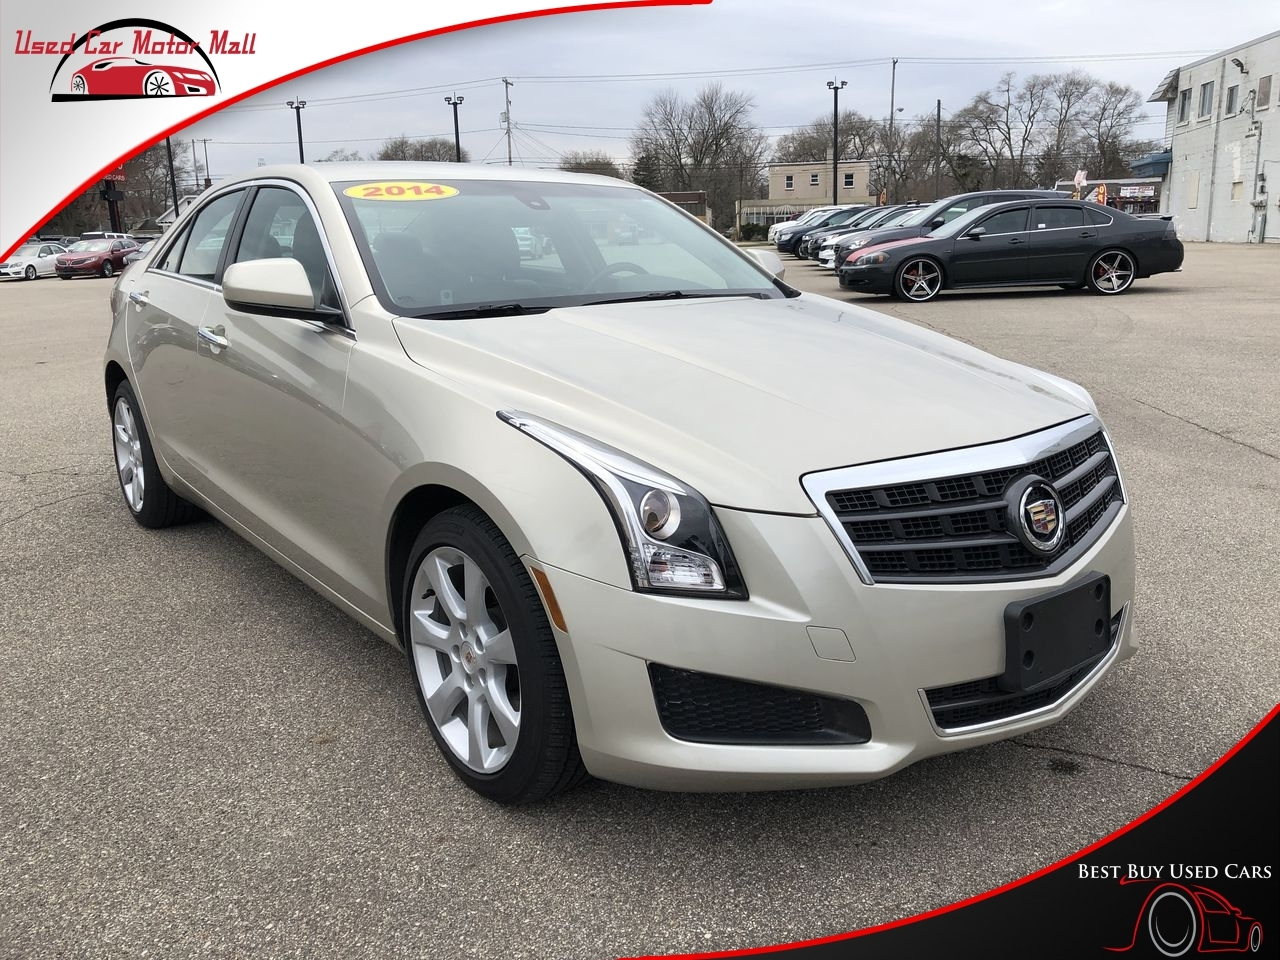 Used 2014 Cadillac ATS for Sale (with Photos) | U.S. News ...